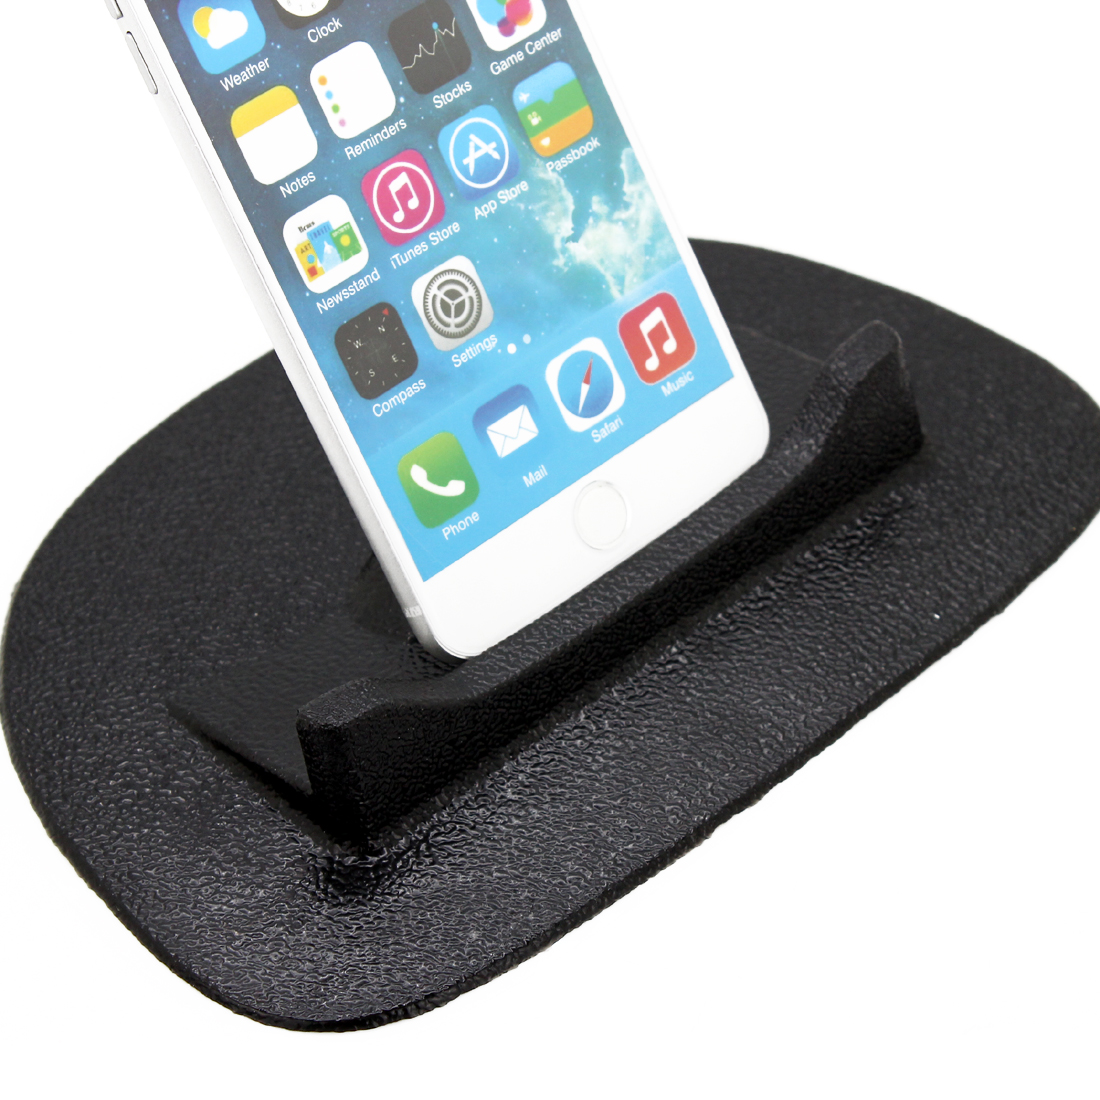 Dewtreetali Free shipping Hot Selling Dashboard Pad Car Cell Phone Holder Sticky Silicone Pad Mount Stand Small Size 2016